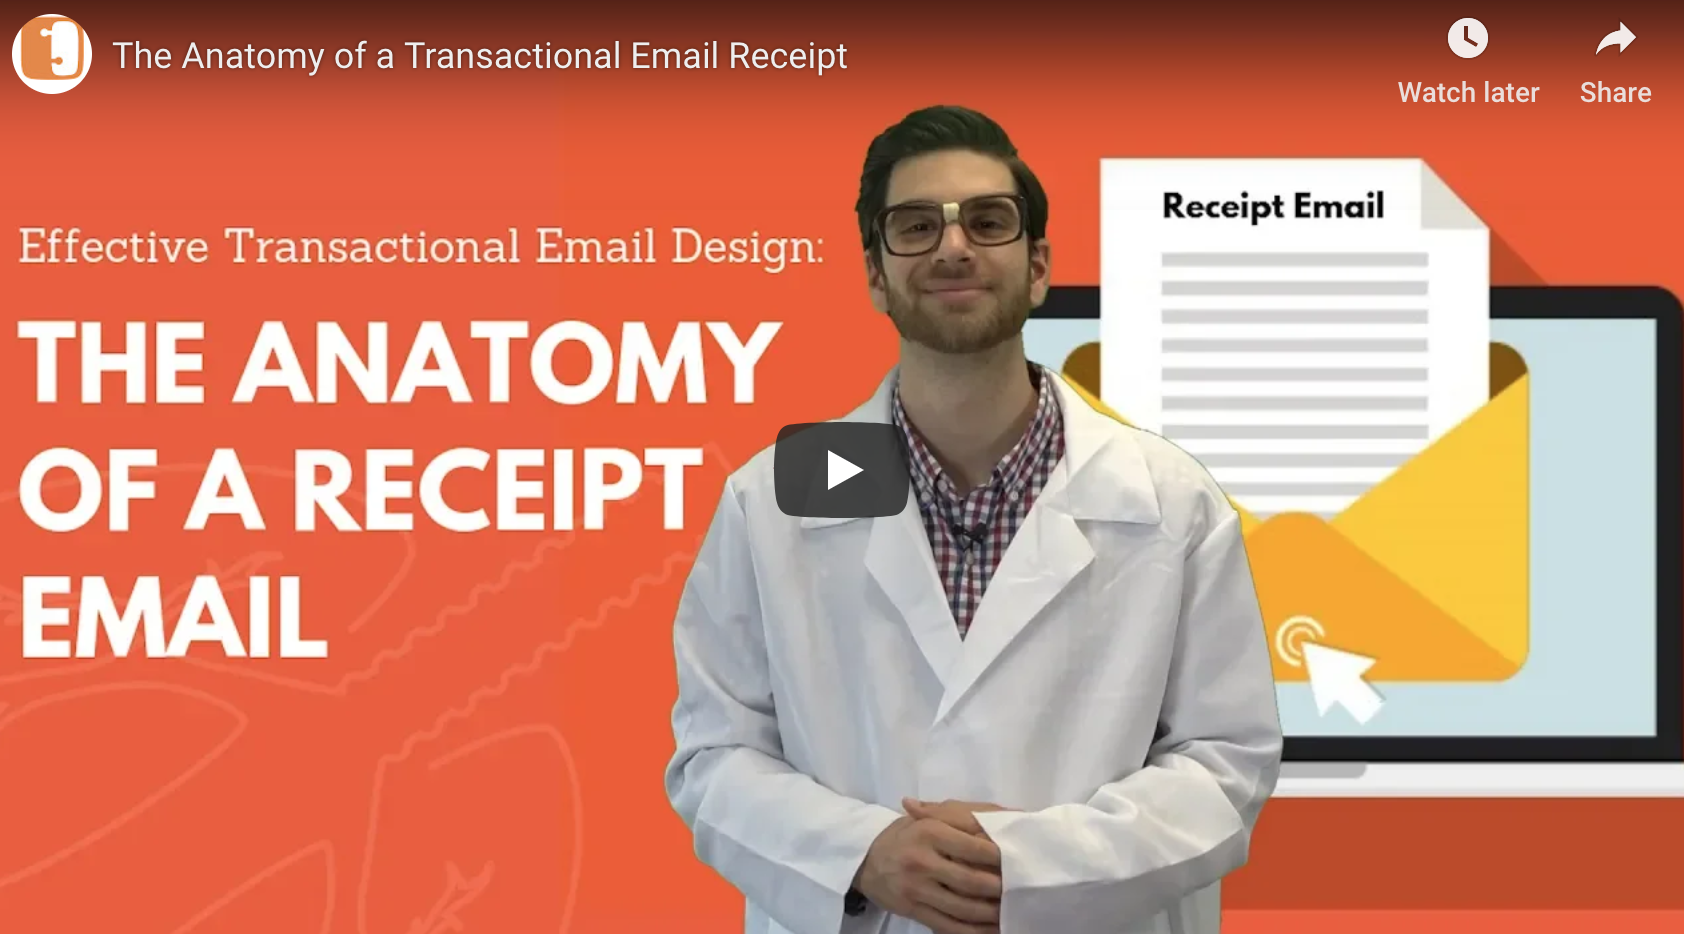 Effective Transactional Email Design: The Anatomy of a Receipt Email